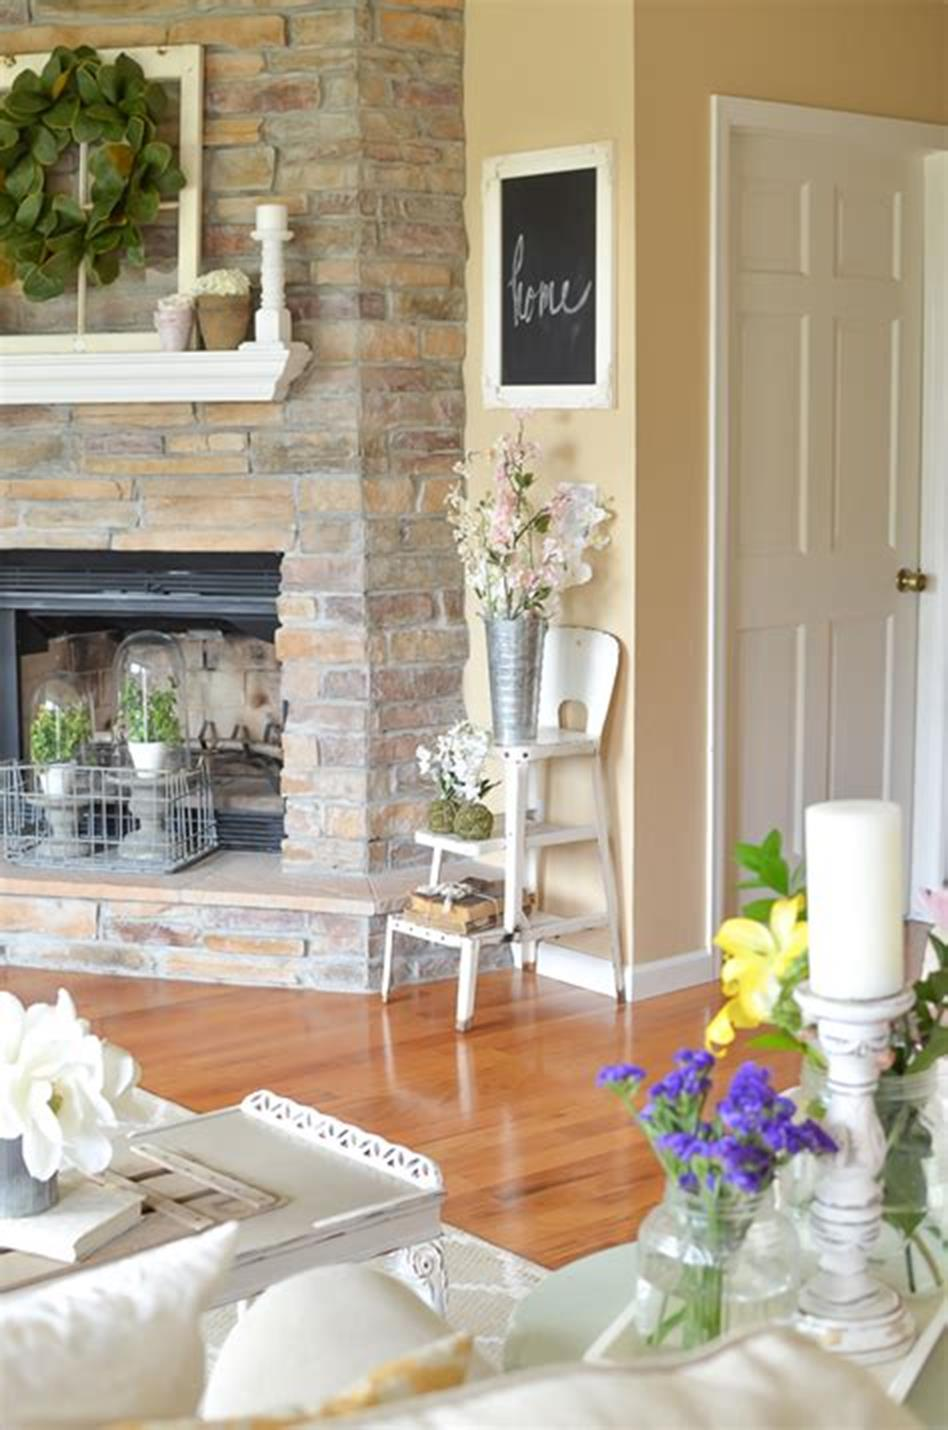 37 Beautiful Farmhouse Spring Decorating Ideas On a Budget for 2019 22